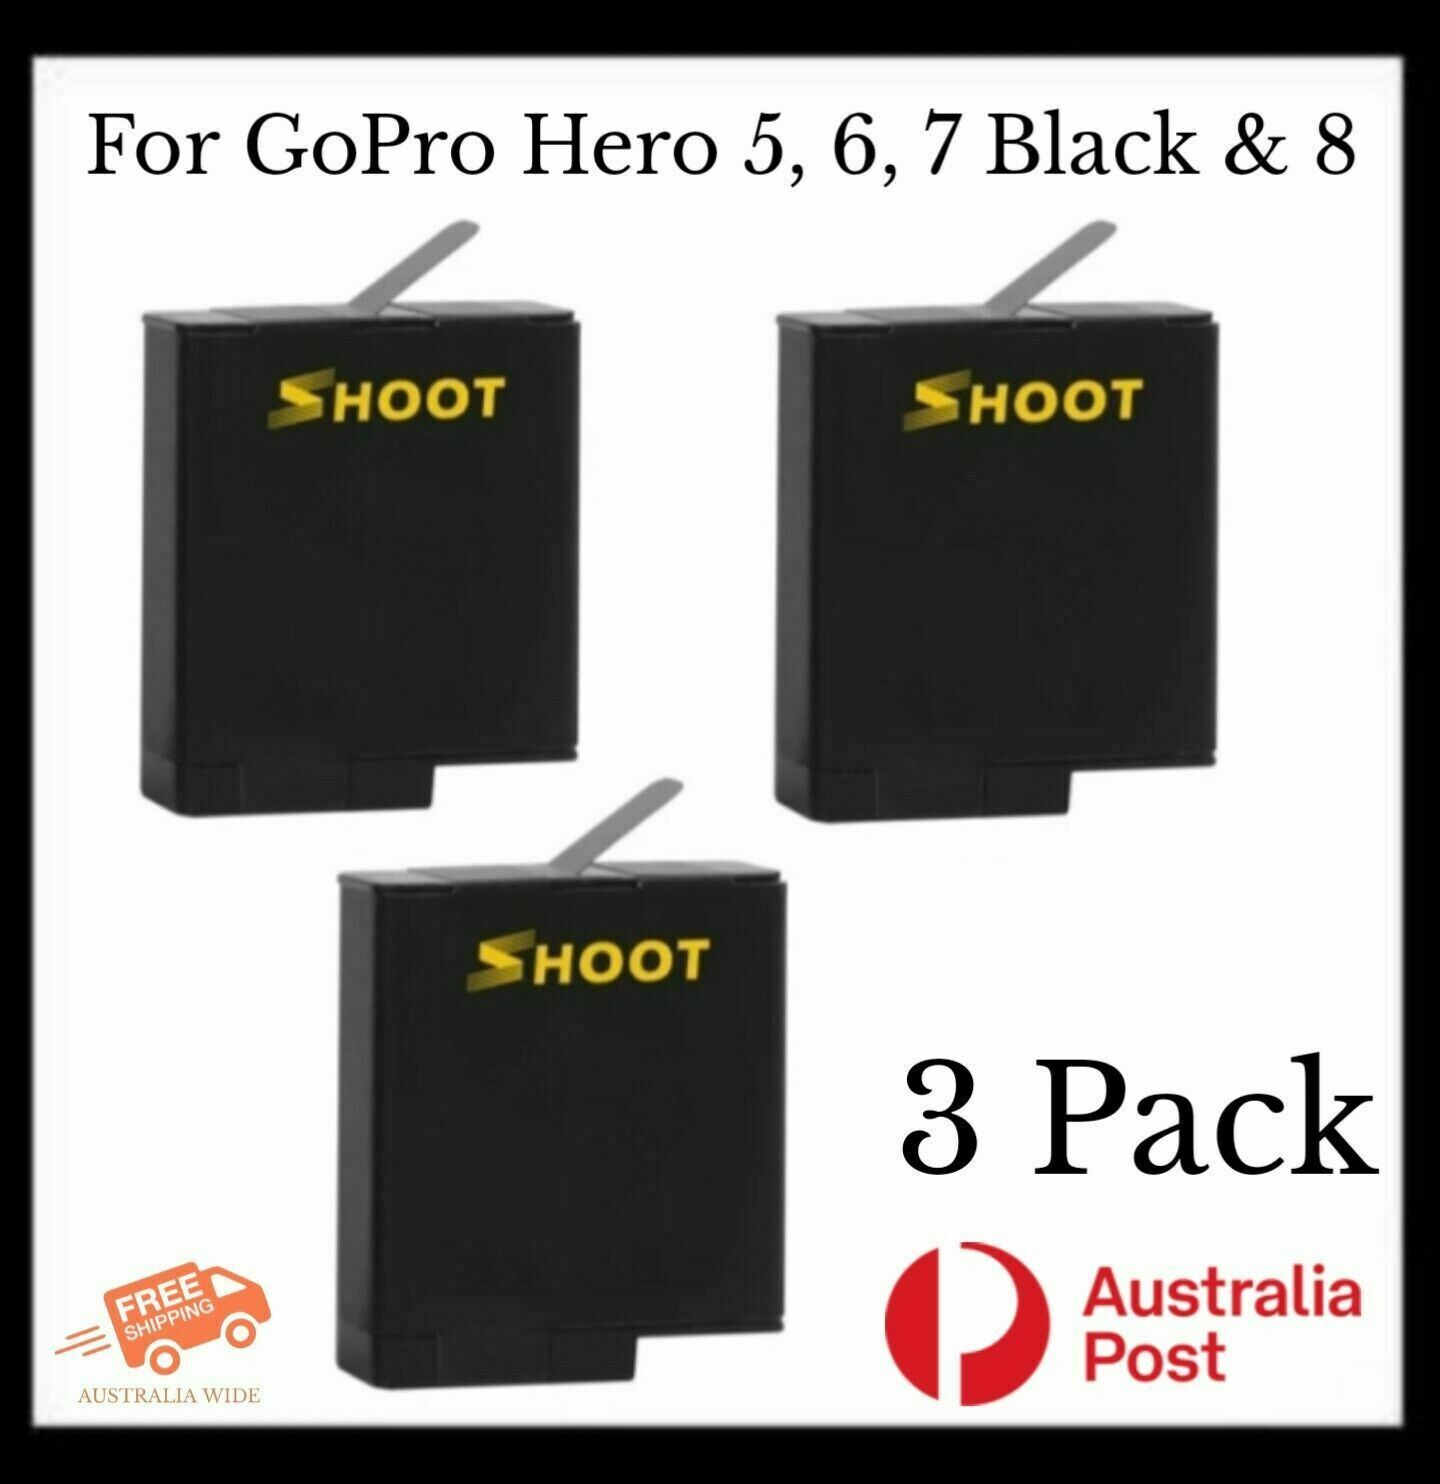 3 Pk SHOOT Rechargeable Batteries for GoPro Hero 5, 6, 7 Black & 8 Action Camera